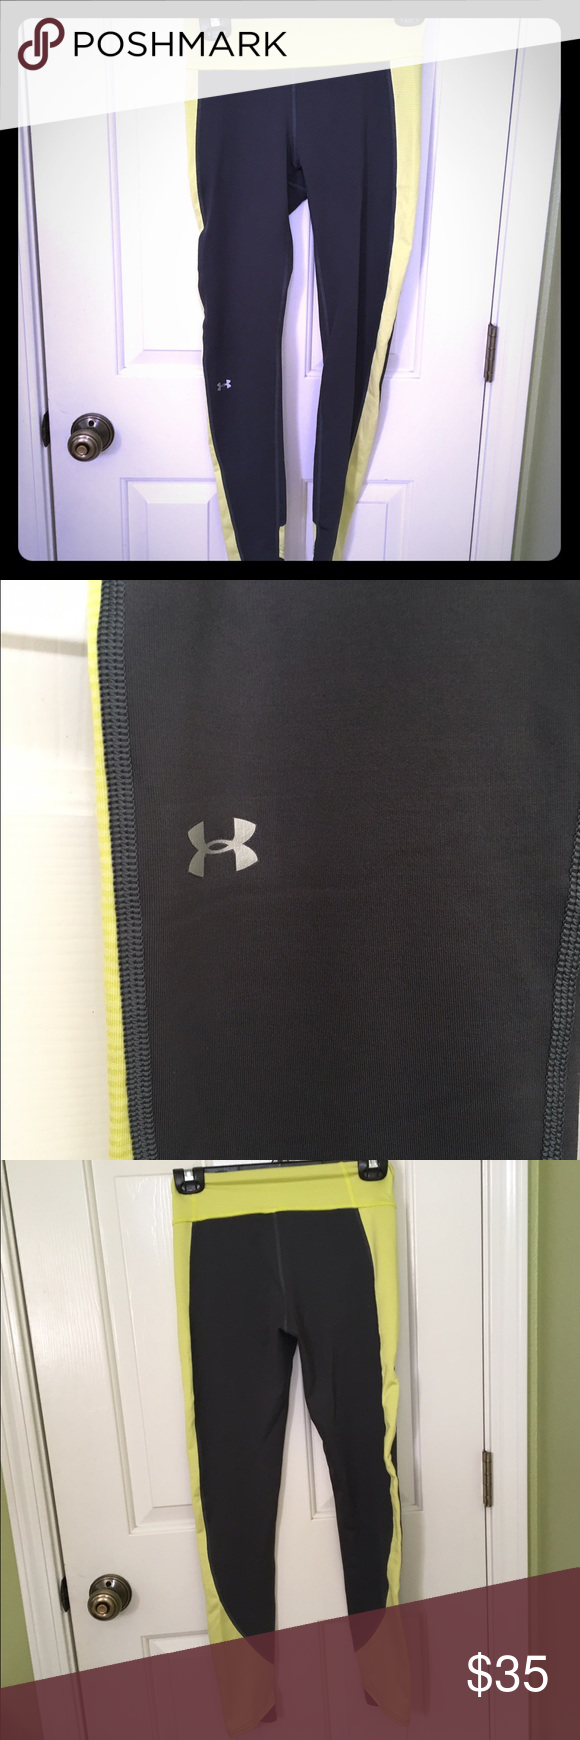 Under Armour leggings Under Armour gray and yellow Cold Gear leggings size small. UA symbol on right leg. Great condition! Under Armour Pants Leggings